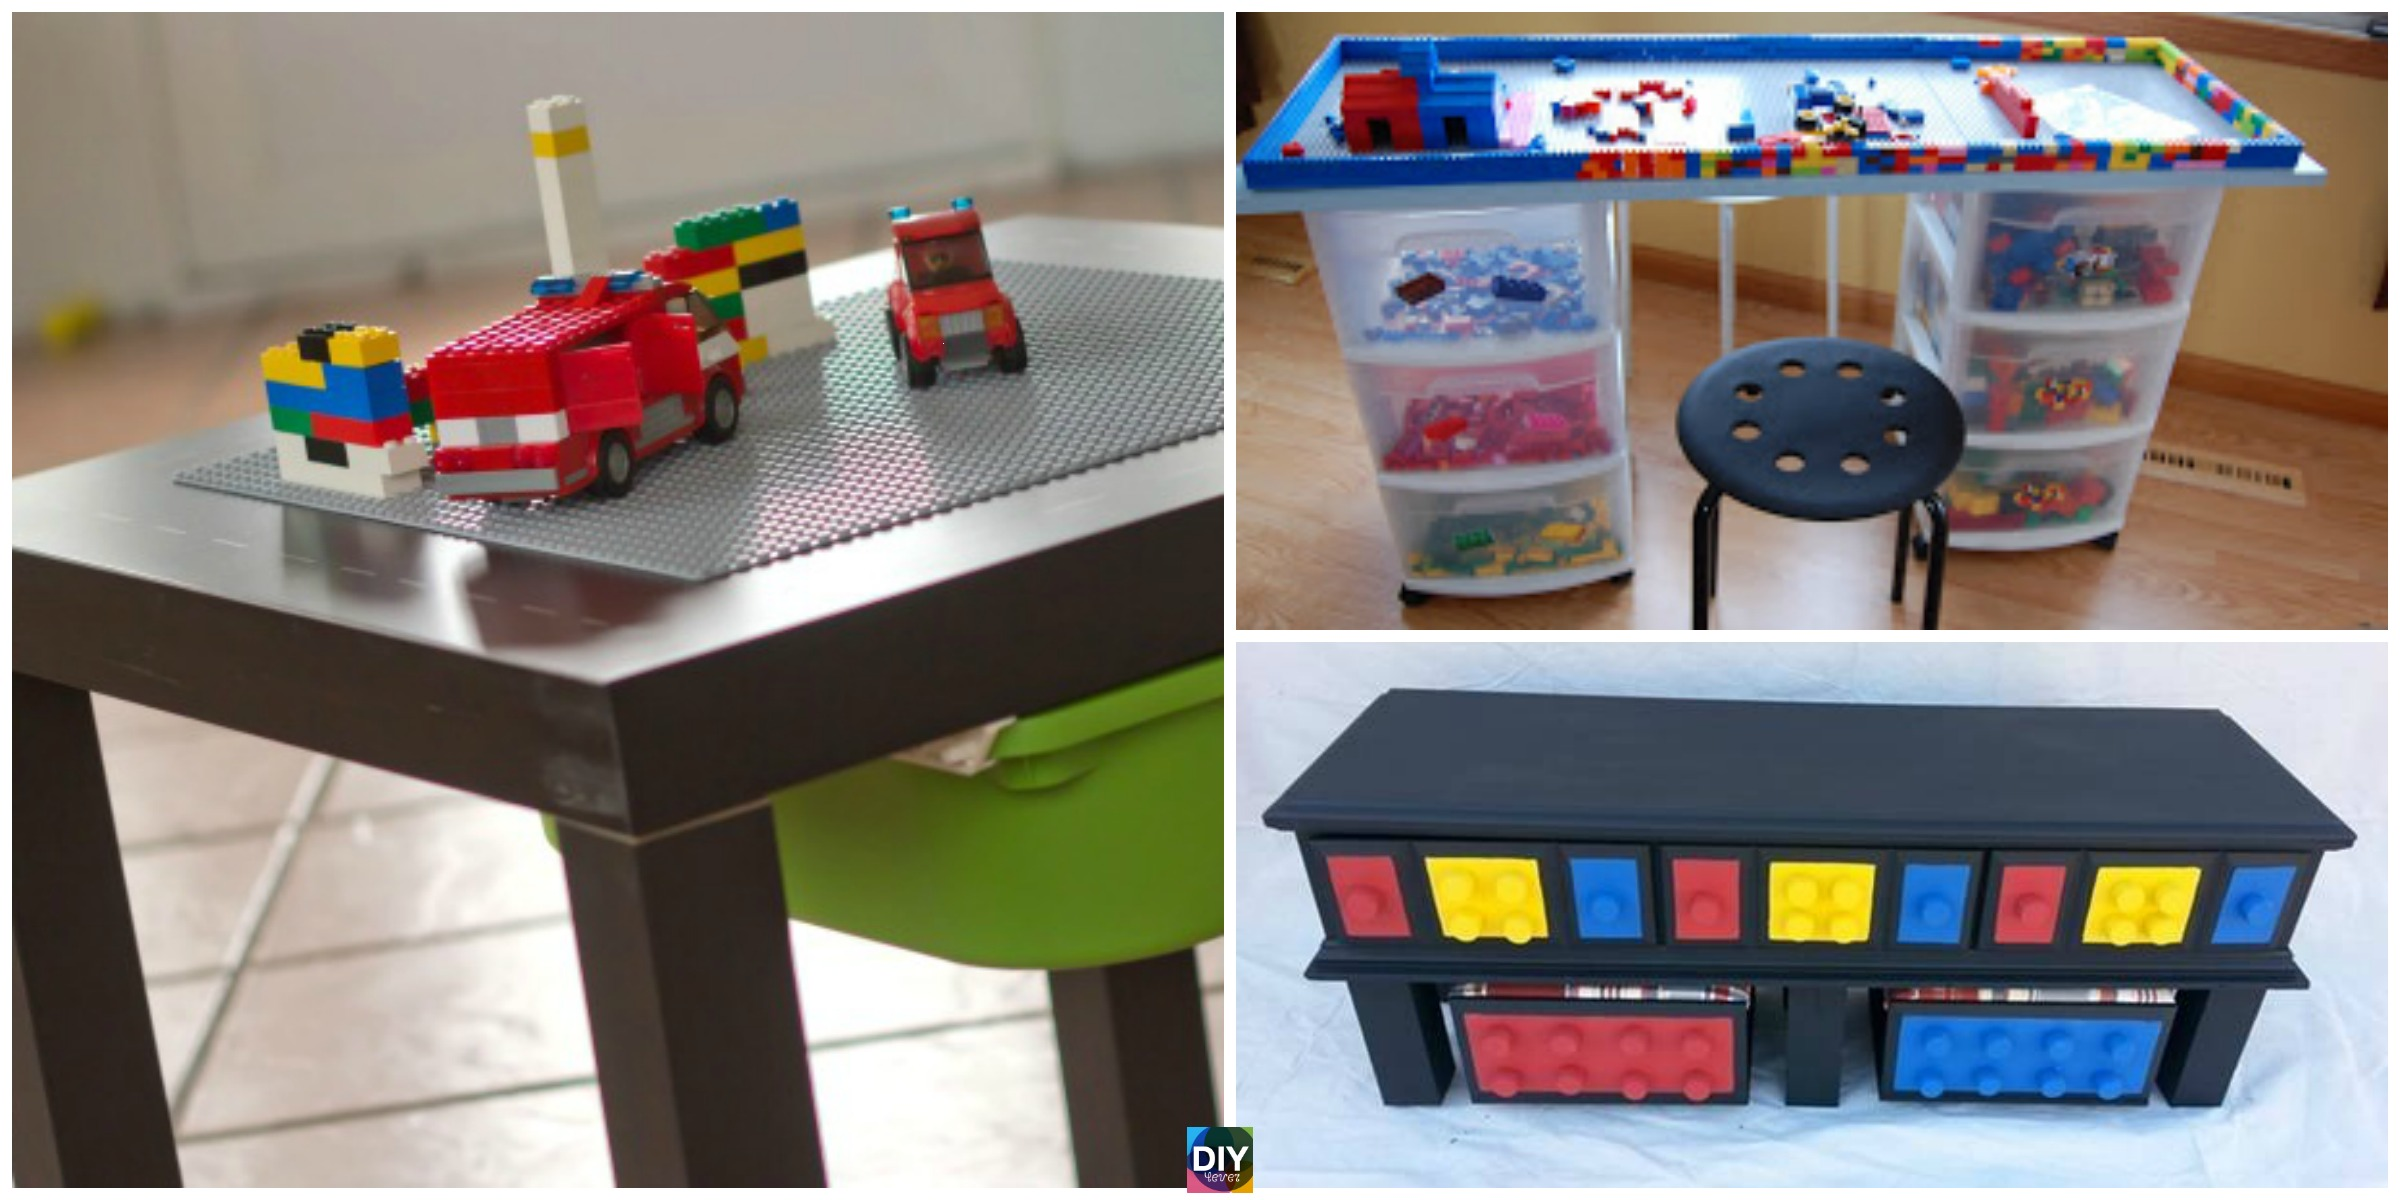 Creative Diy Lego Table Ideas Tutorials Diy 4 Ever